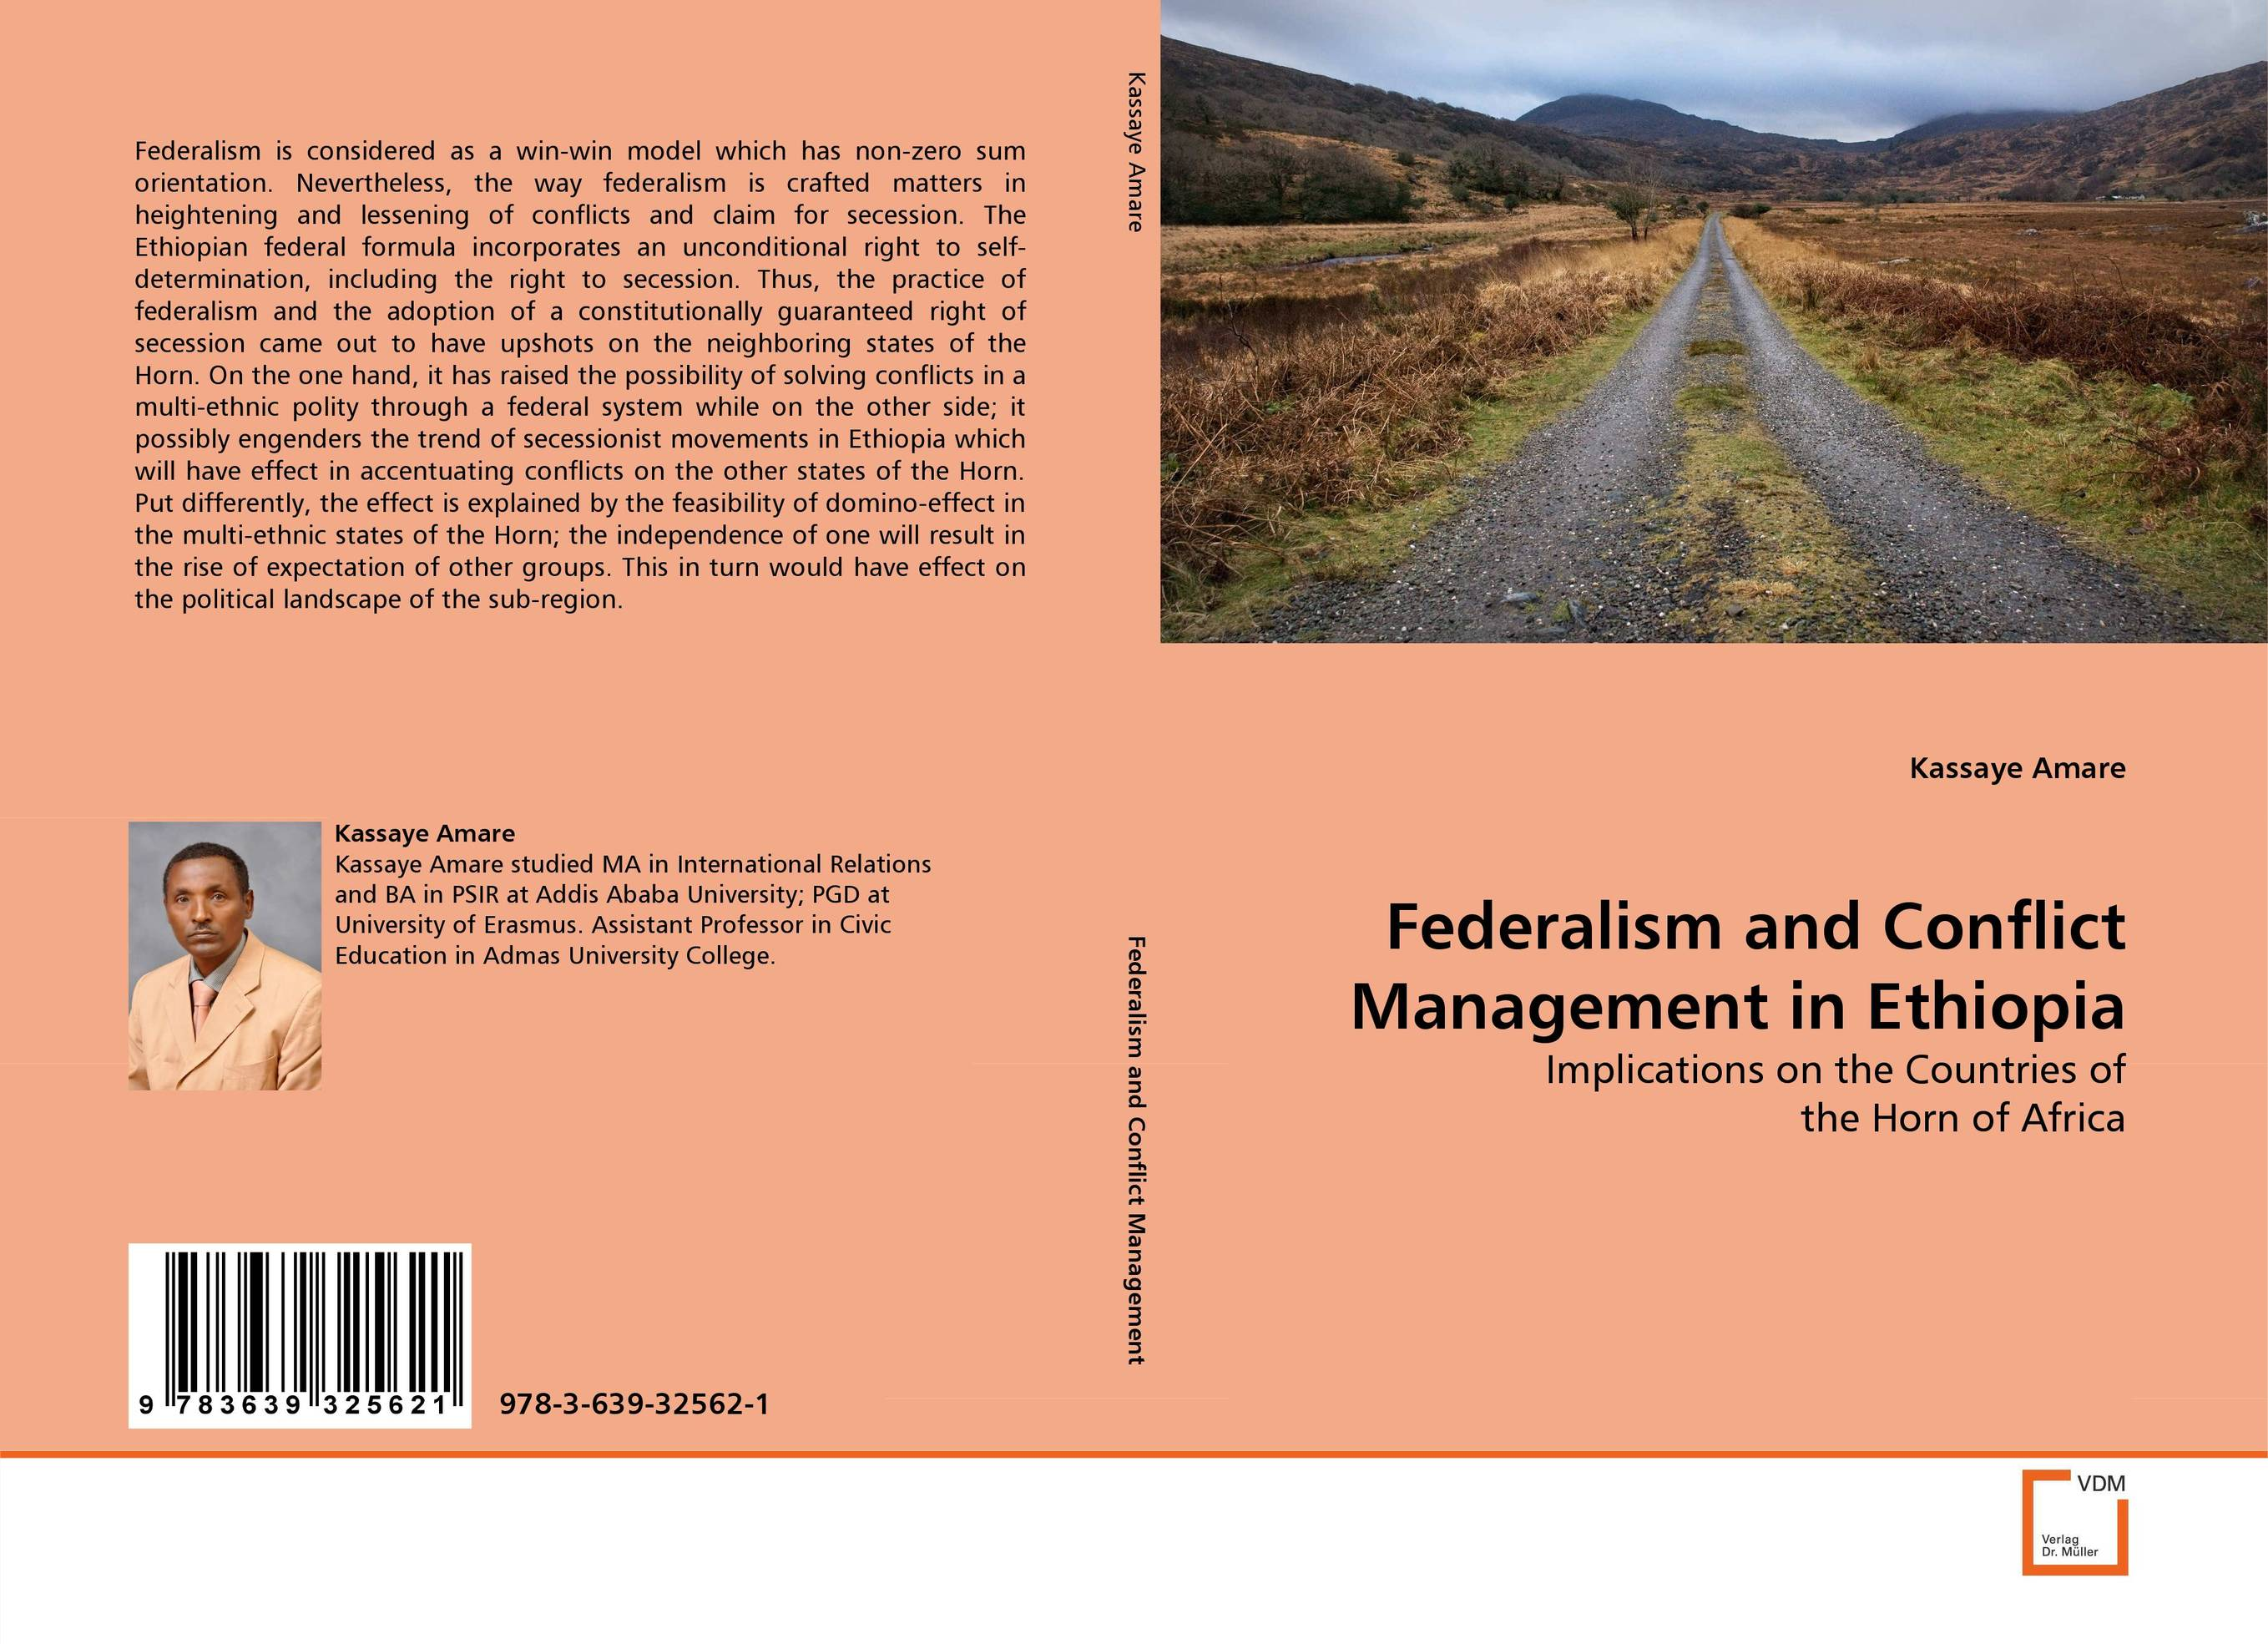 Federalism and Conflict Management in Ethiopia сборник статей ethnic conflicts in the baltic states in post soviet period